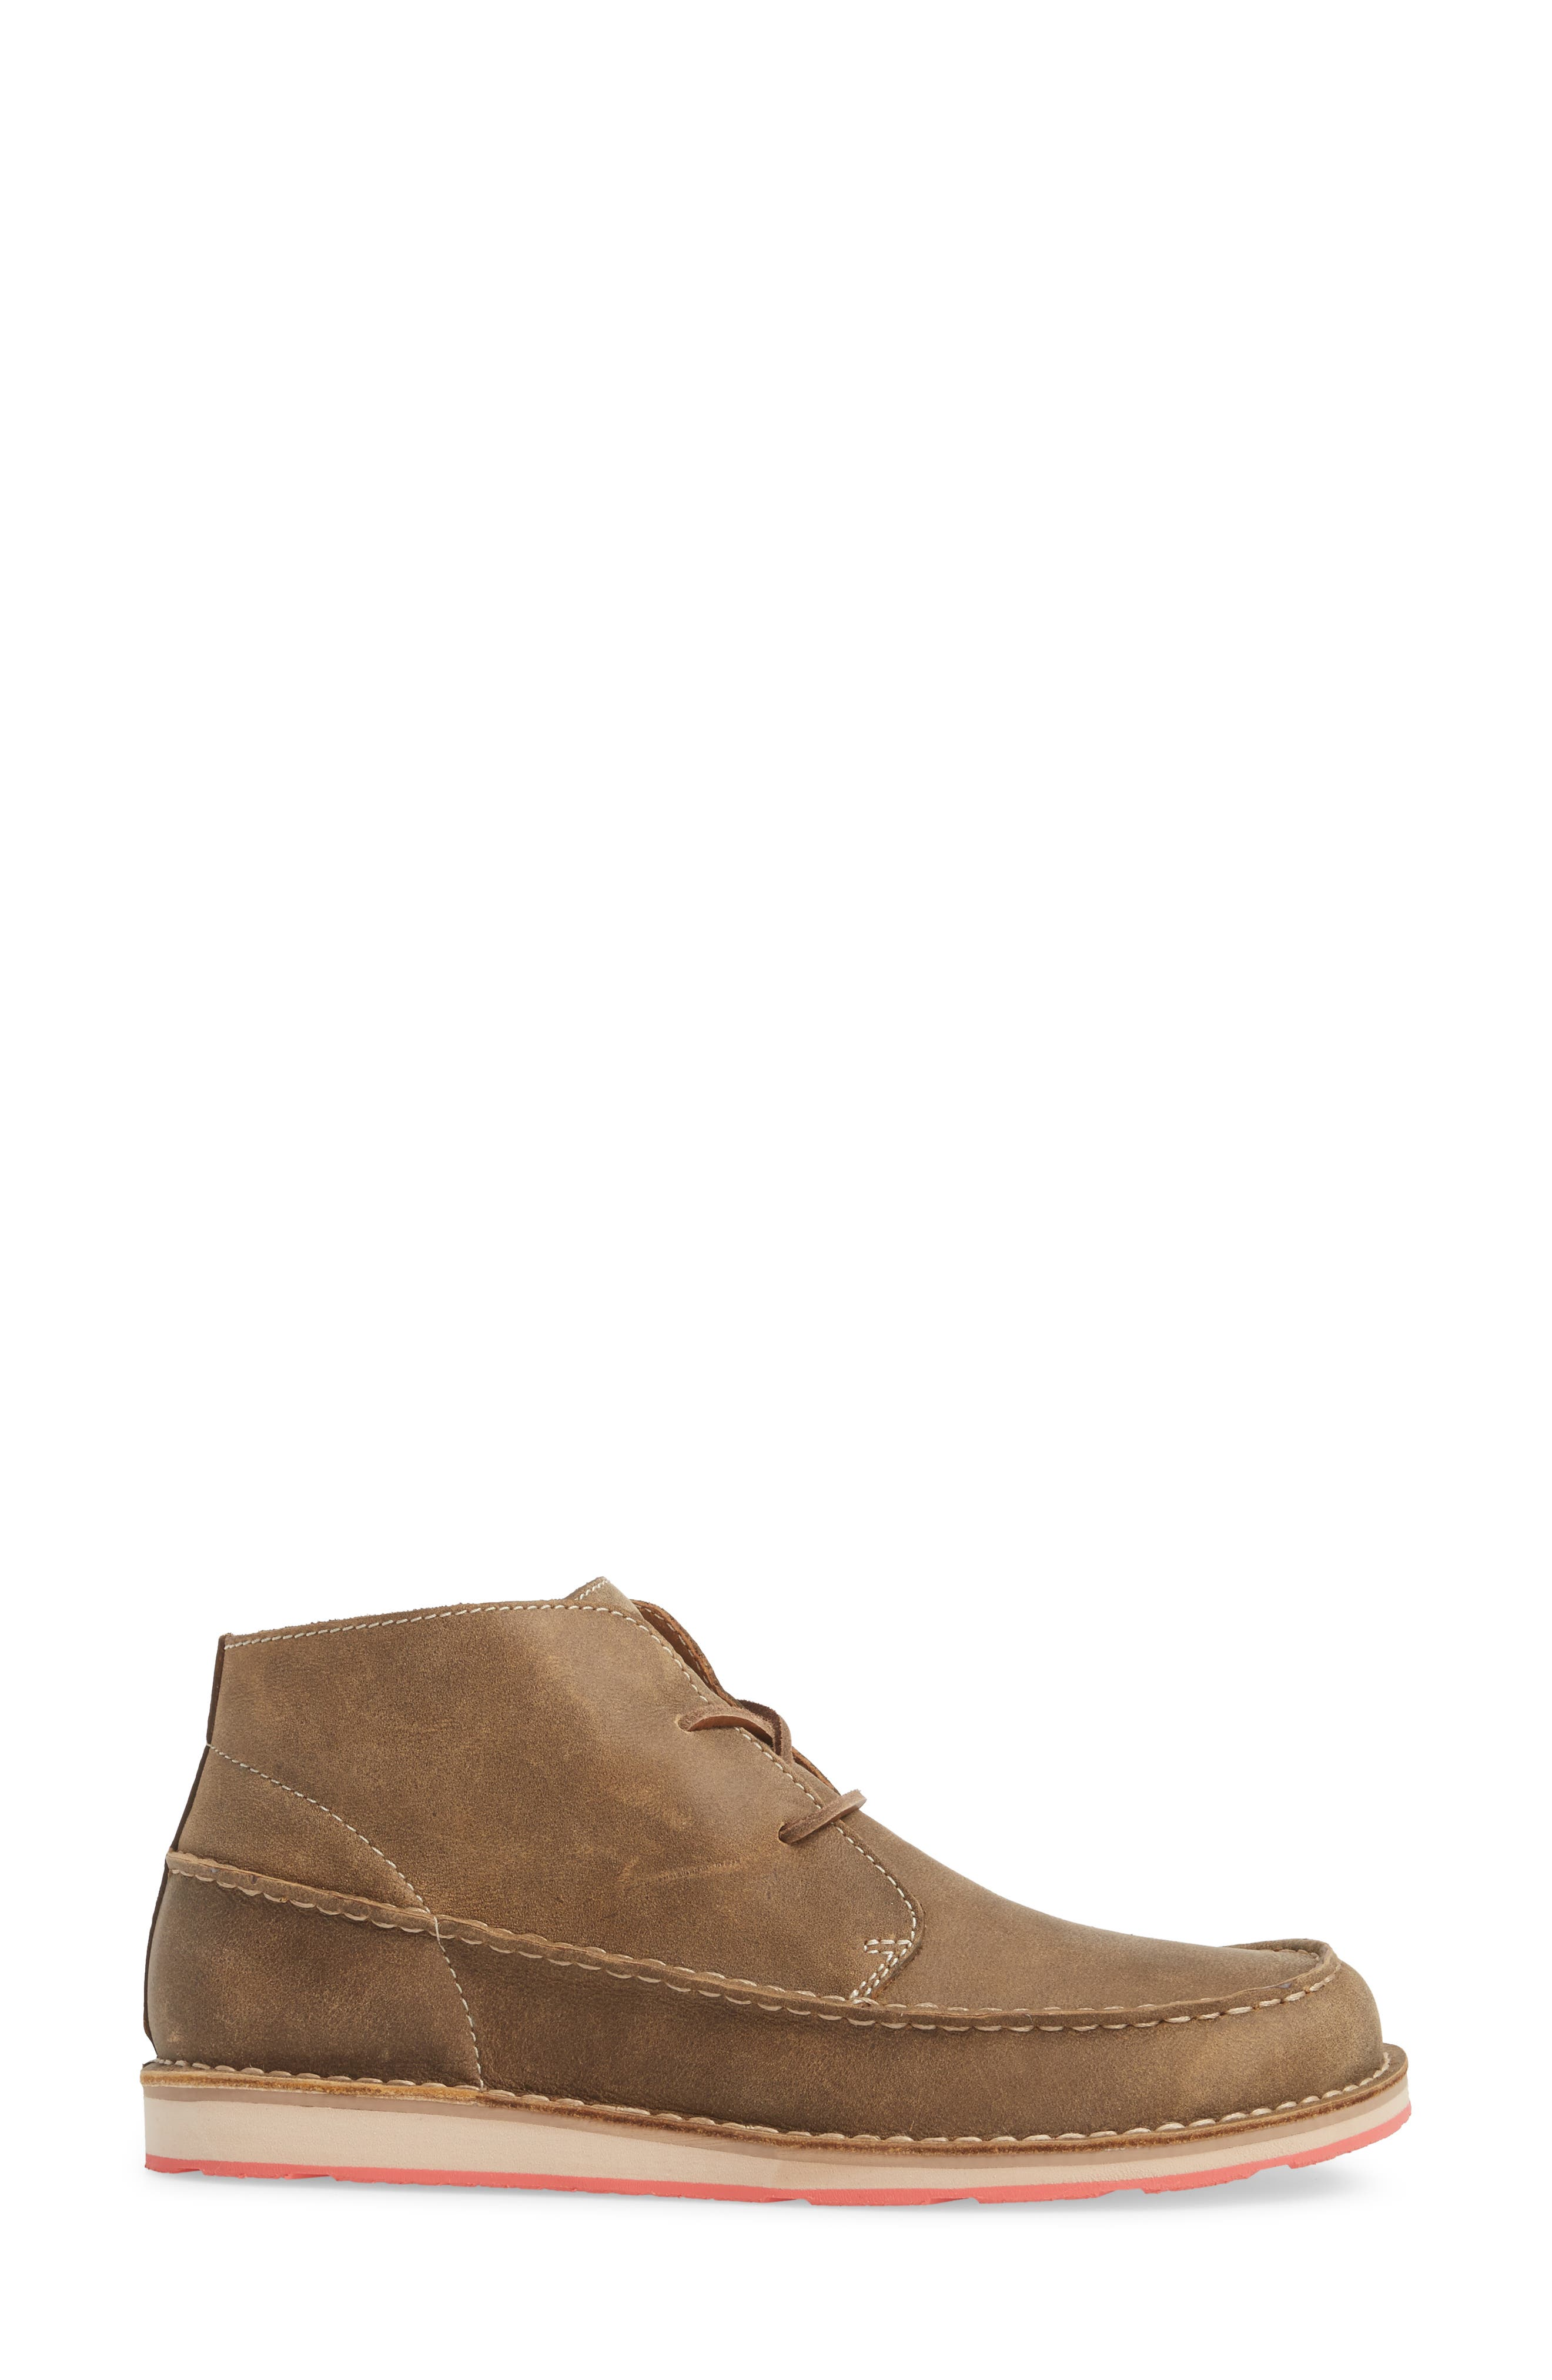 Cruiser Chukka Boot,                             Alternate thumbnail 3, color,                             Lace Brown Bomber Leather